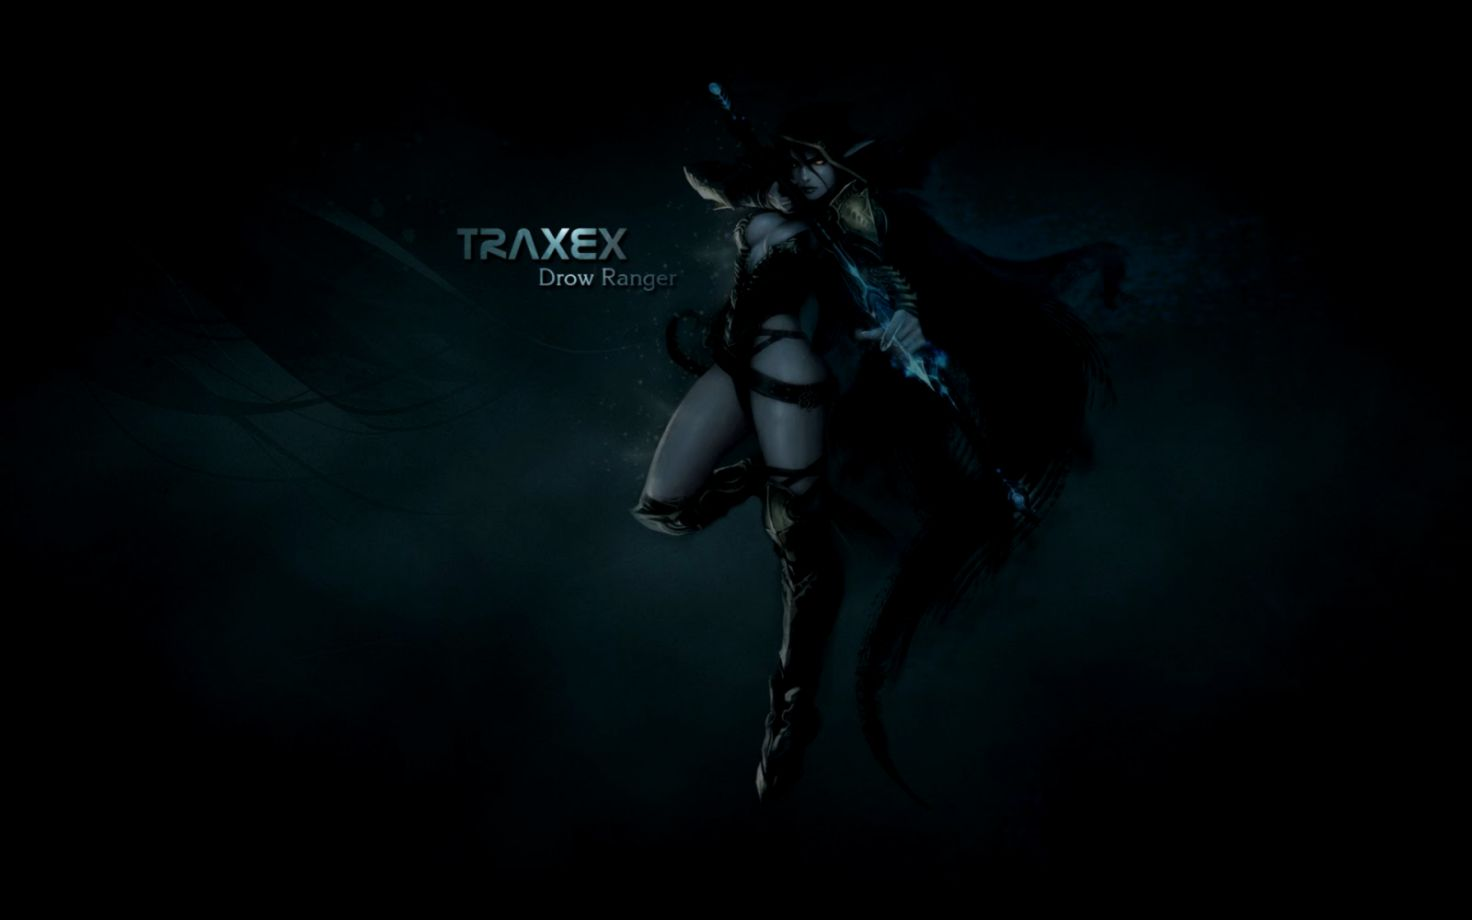 Traxex Drow Ranger Hd Wallpaper Wallpapers Supreme